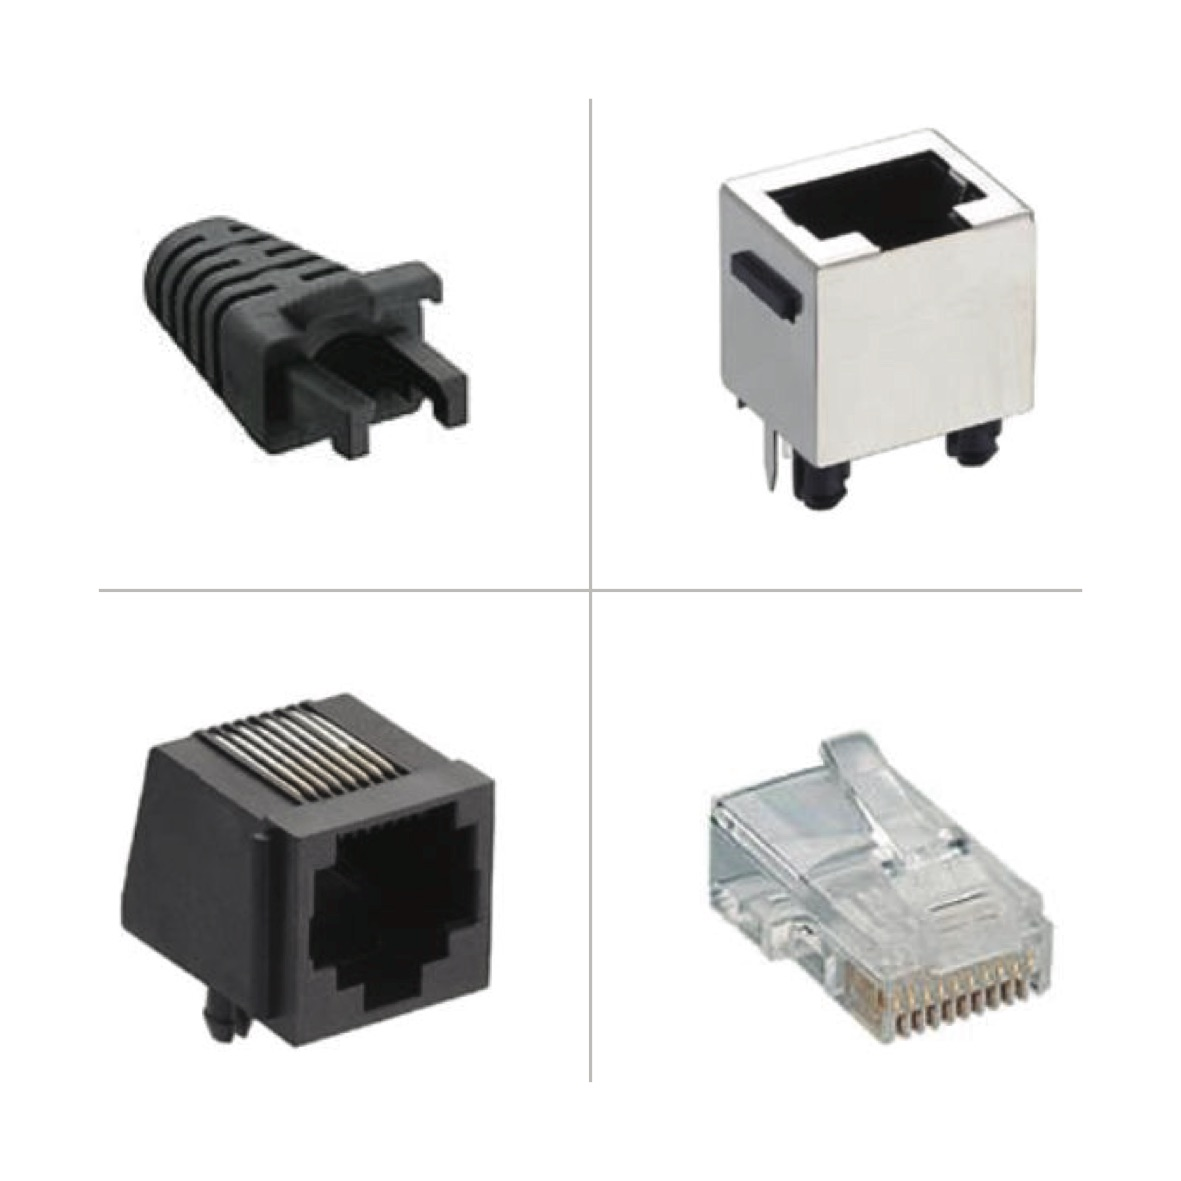 Lumberg Connect RJ Series Connectors